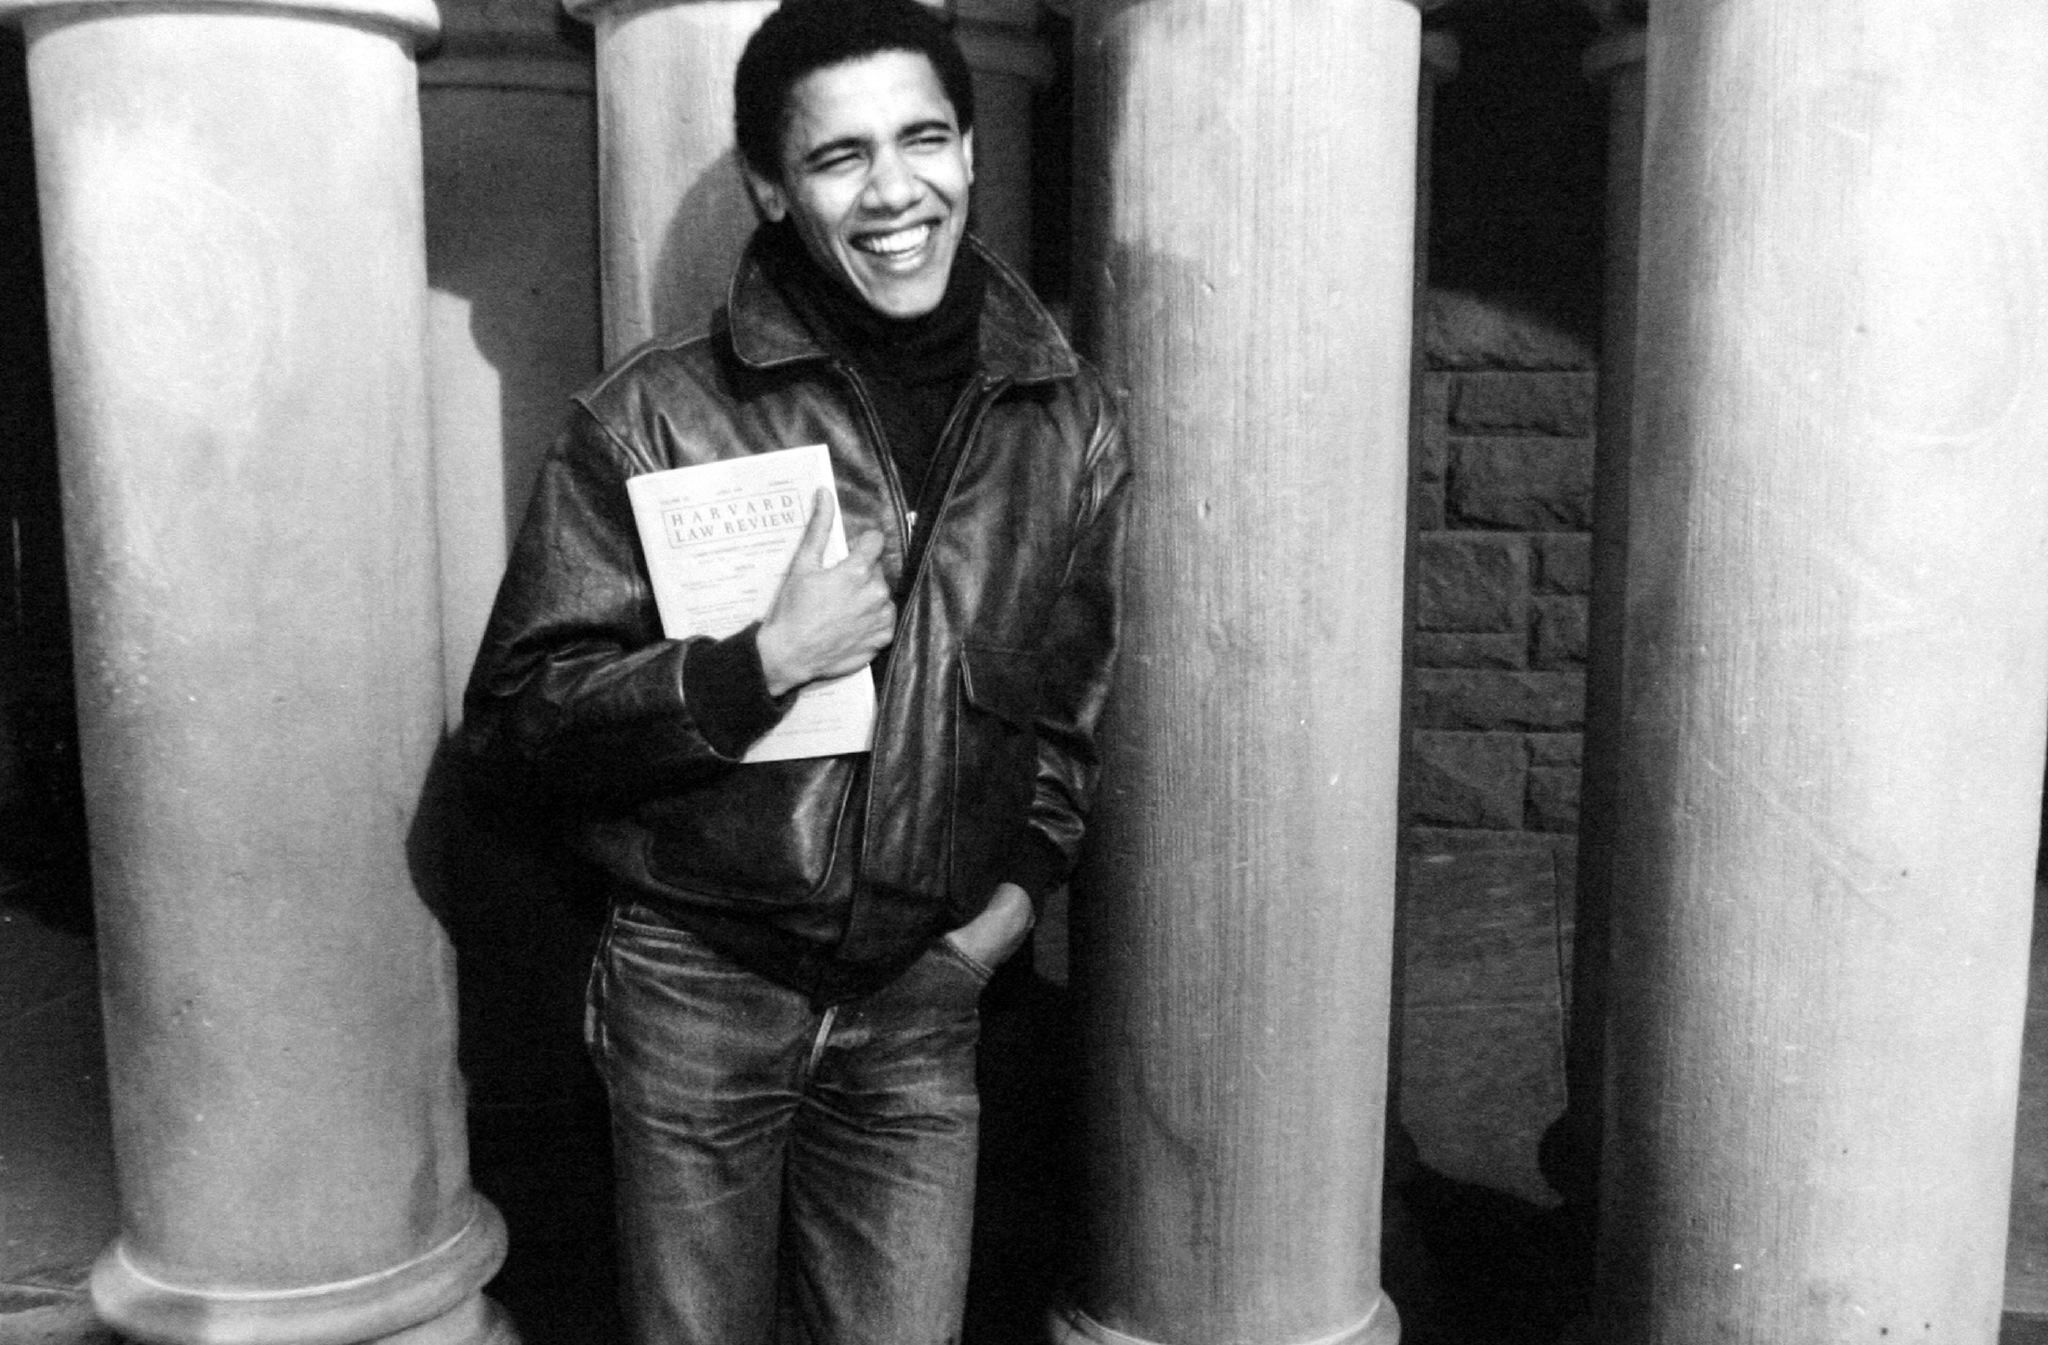 Obama as a Harvard student in the '90s.